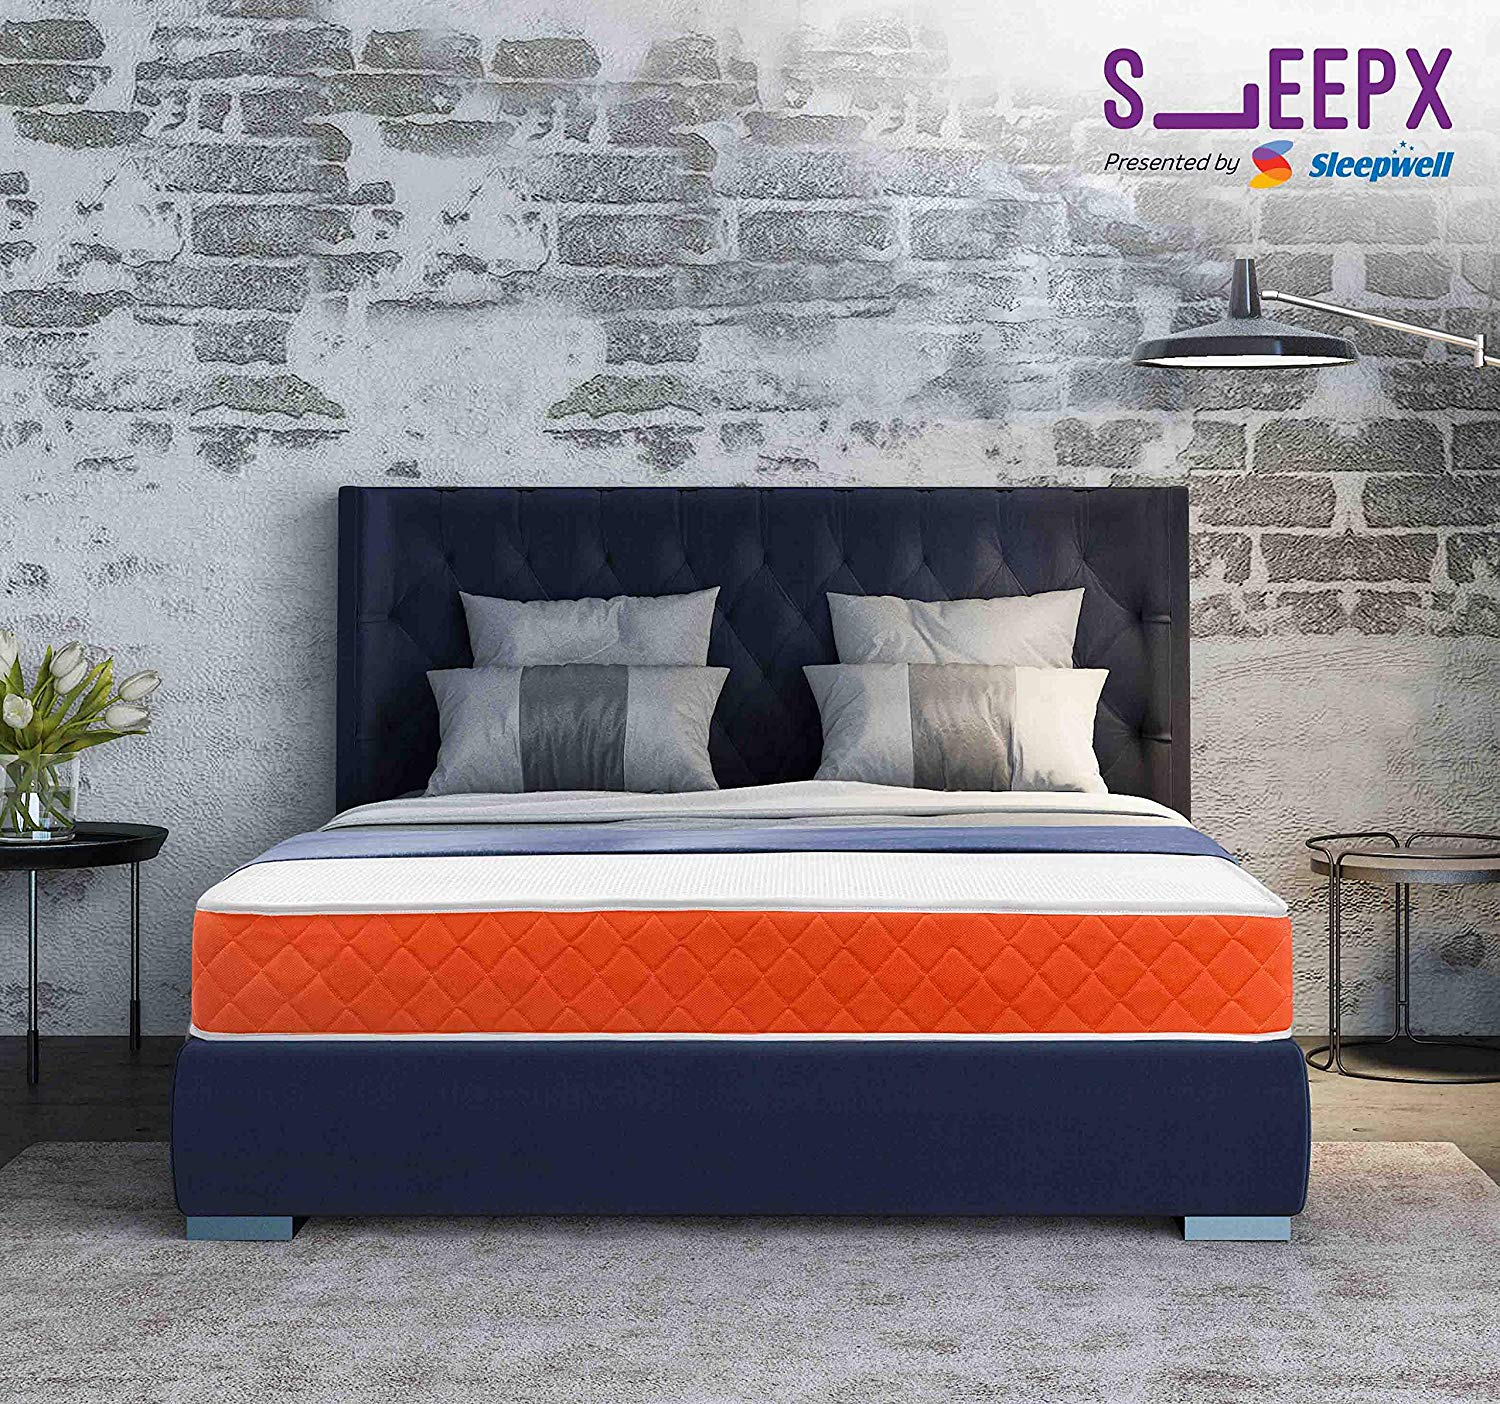 SleepX Presented by Sleepwell Dual mattress - Medium Soft and Hard (72*60*5 Inches)- Amazon